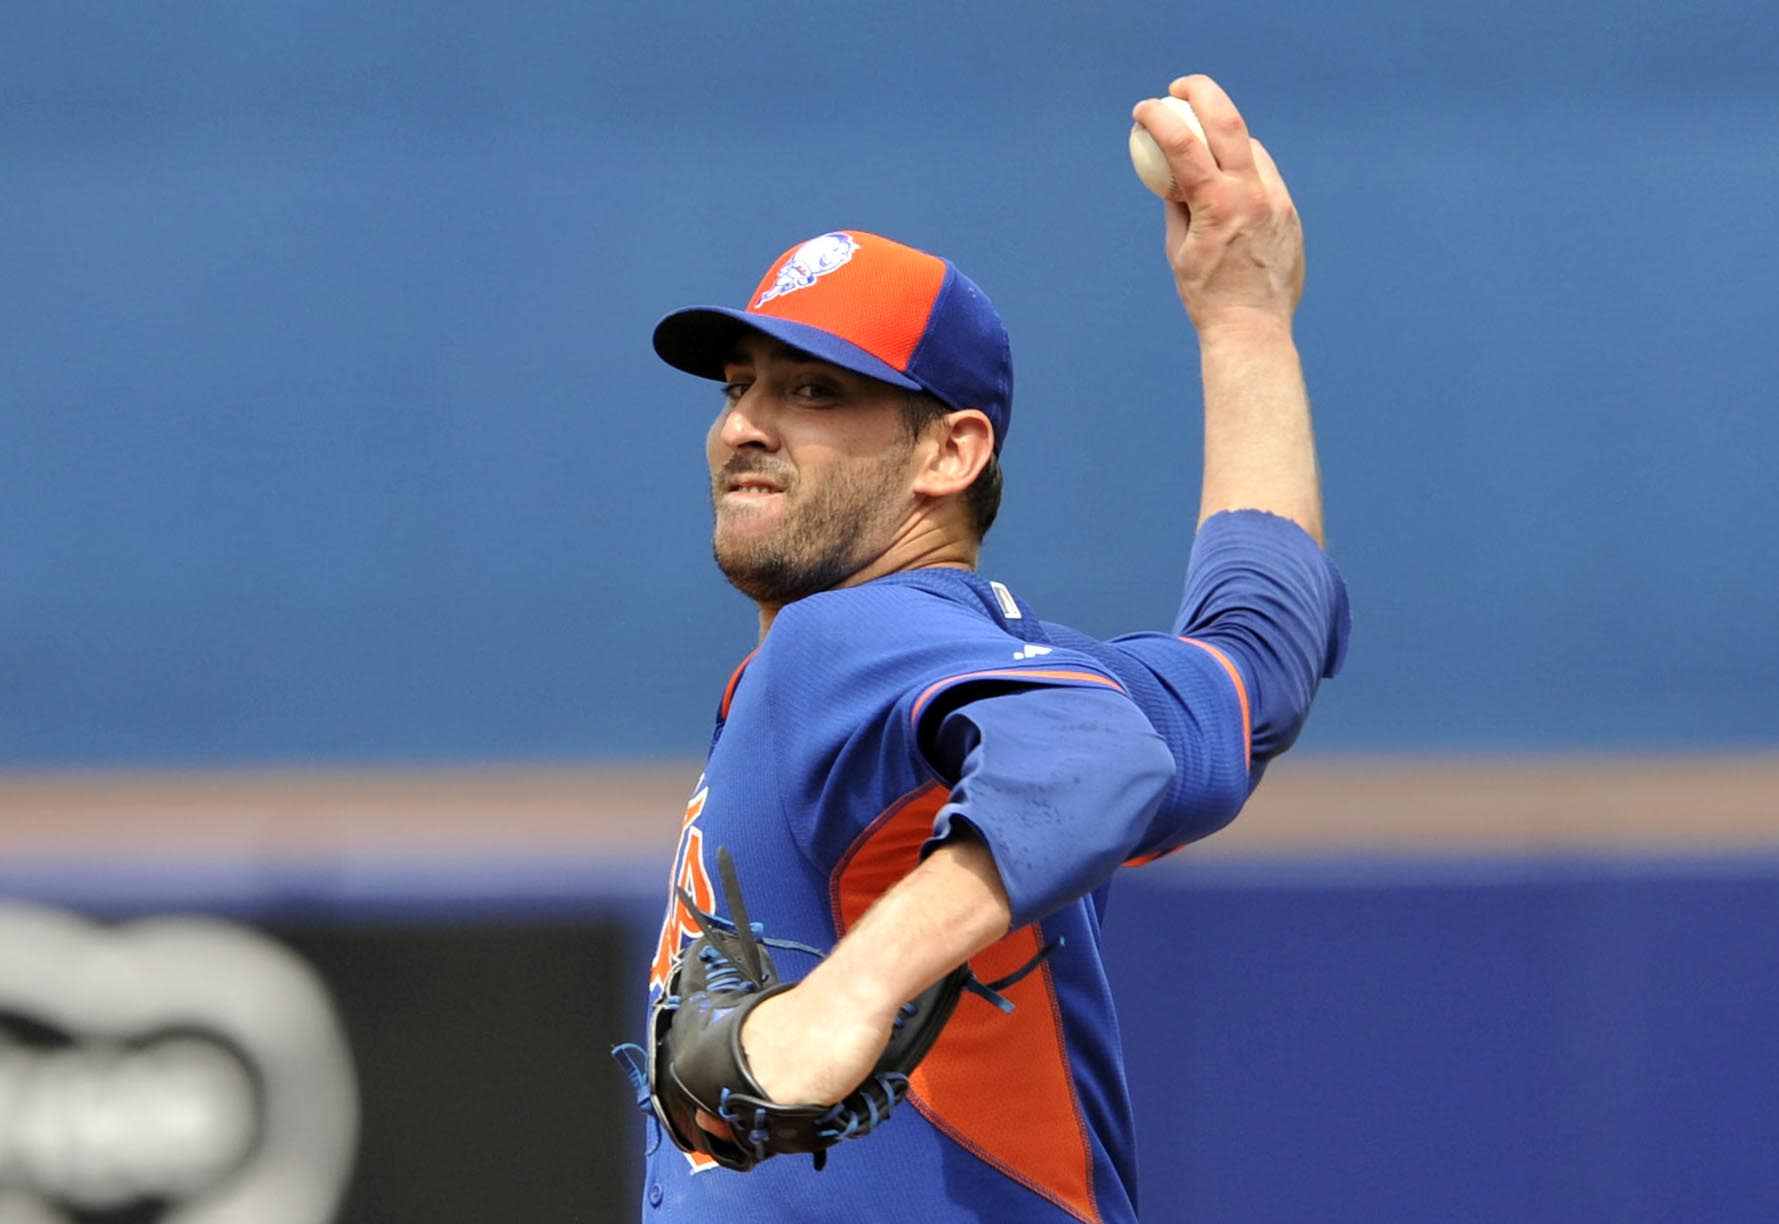 Matt Harvey returned to the mound for the Mets and it was glorious